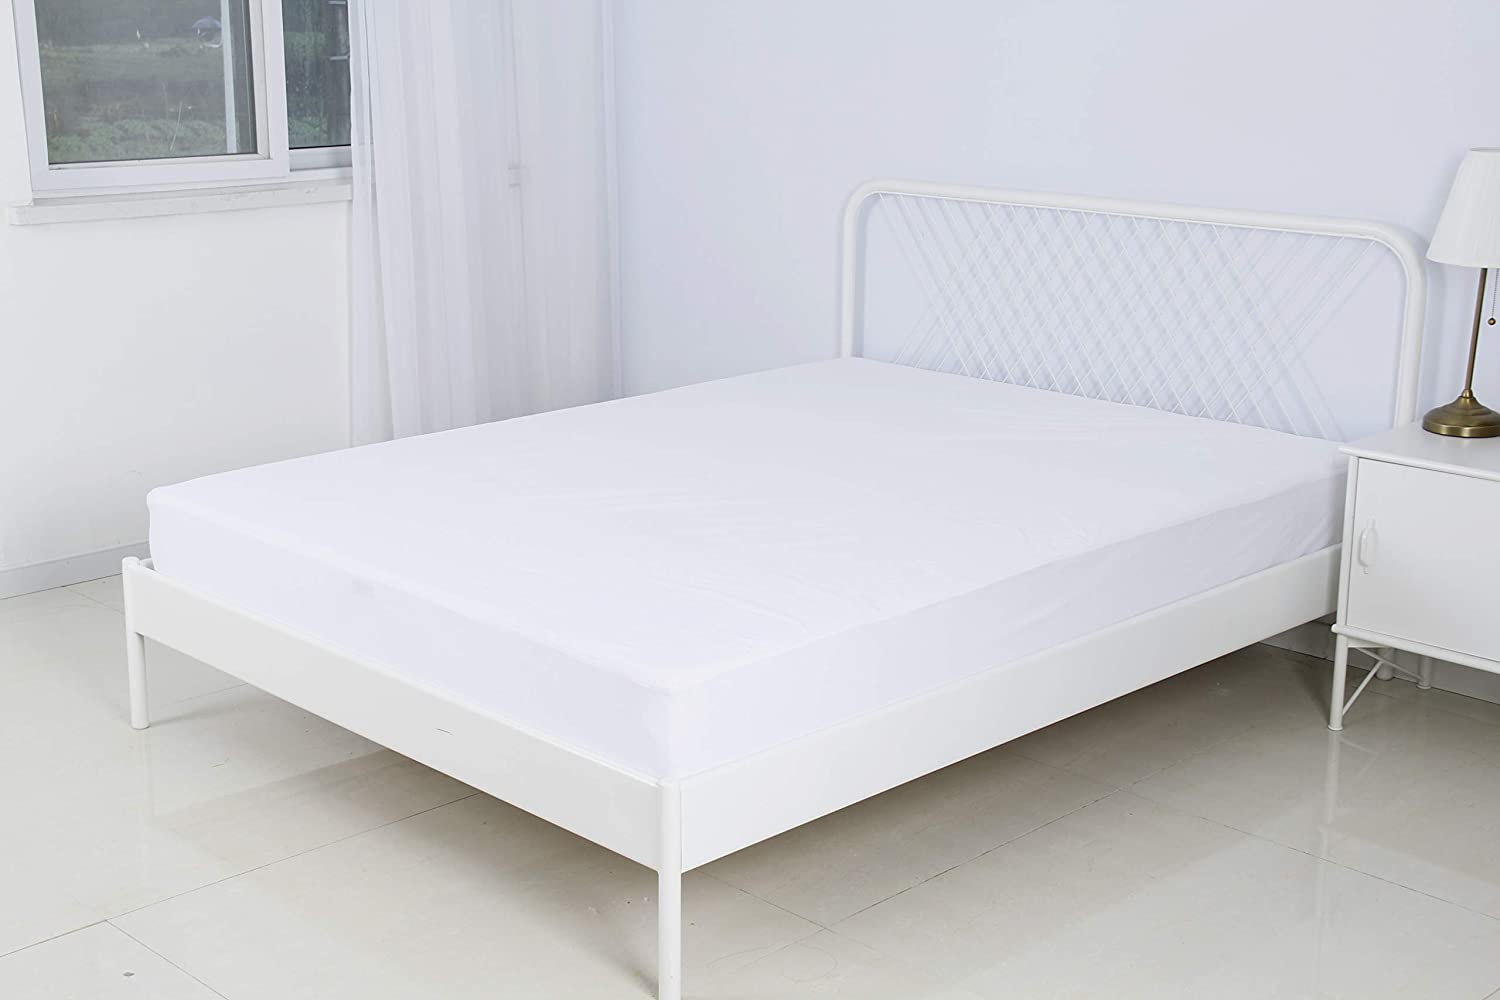 Umi Fitted Single Size 90x190//200cm Essentials Waterproof Mattress Protector Terry Towelling Cover